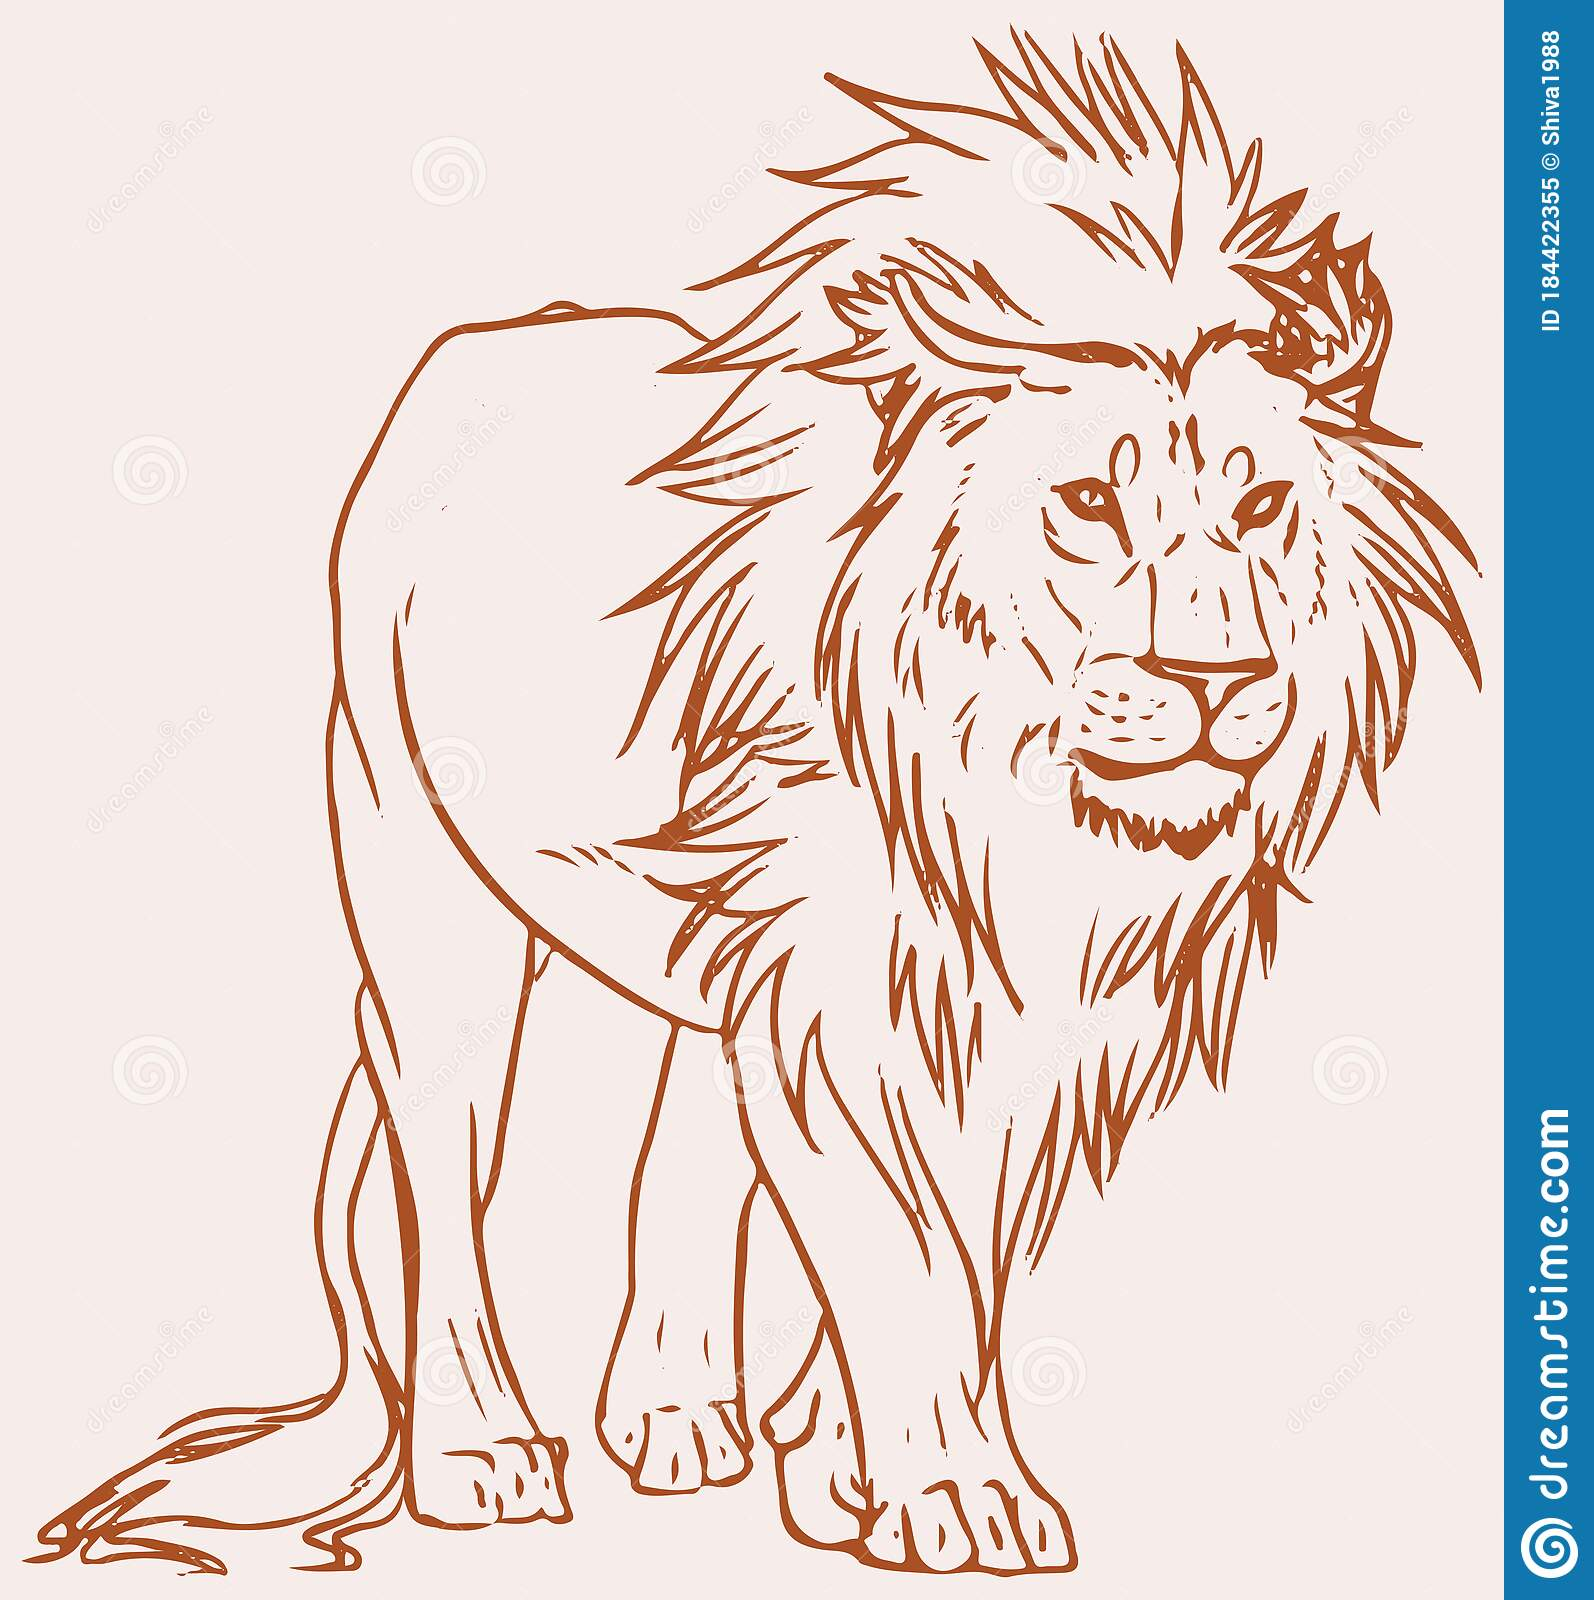 Sketch Of Male Lion Standing Outline Editable Vector Illustration Stock Vector Illustration Of Danger Horoscope 184422355 Choose from over a million free vectors, clipart graphics, vector art images, design templates, and illustrations created by artists worldwide! dreamstime com